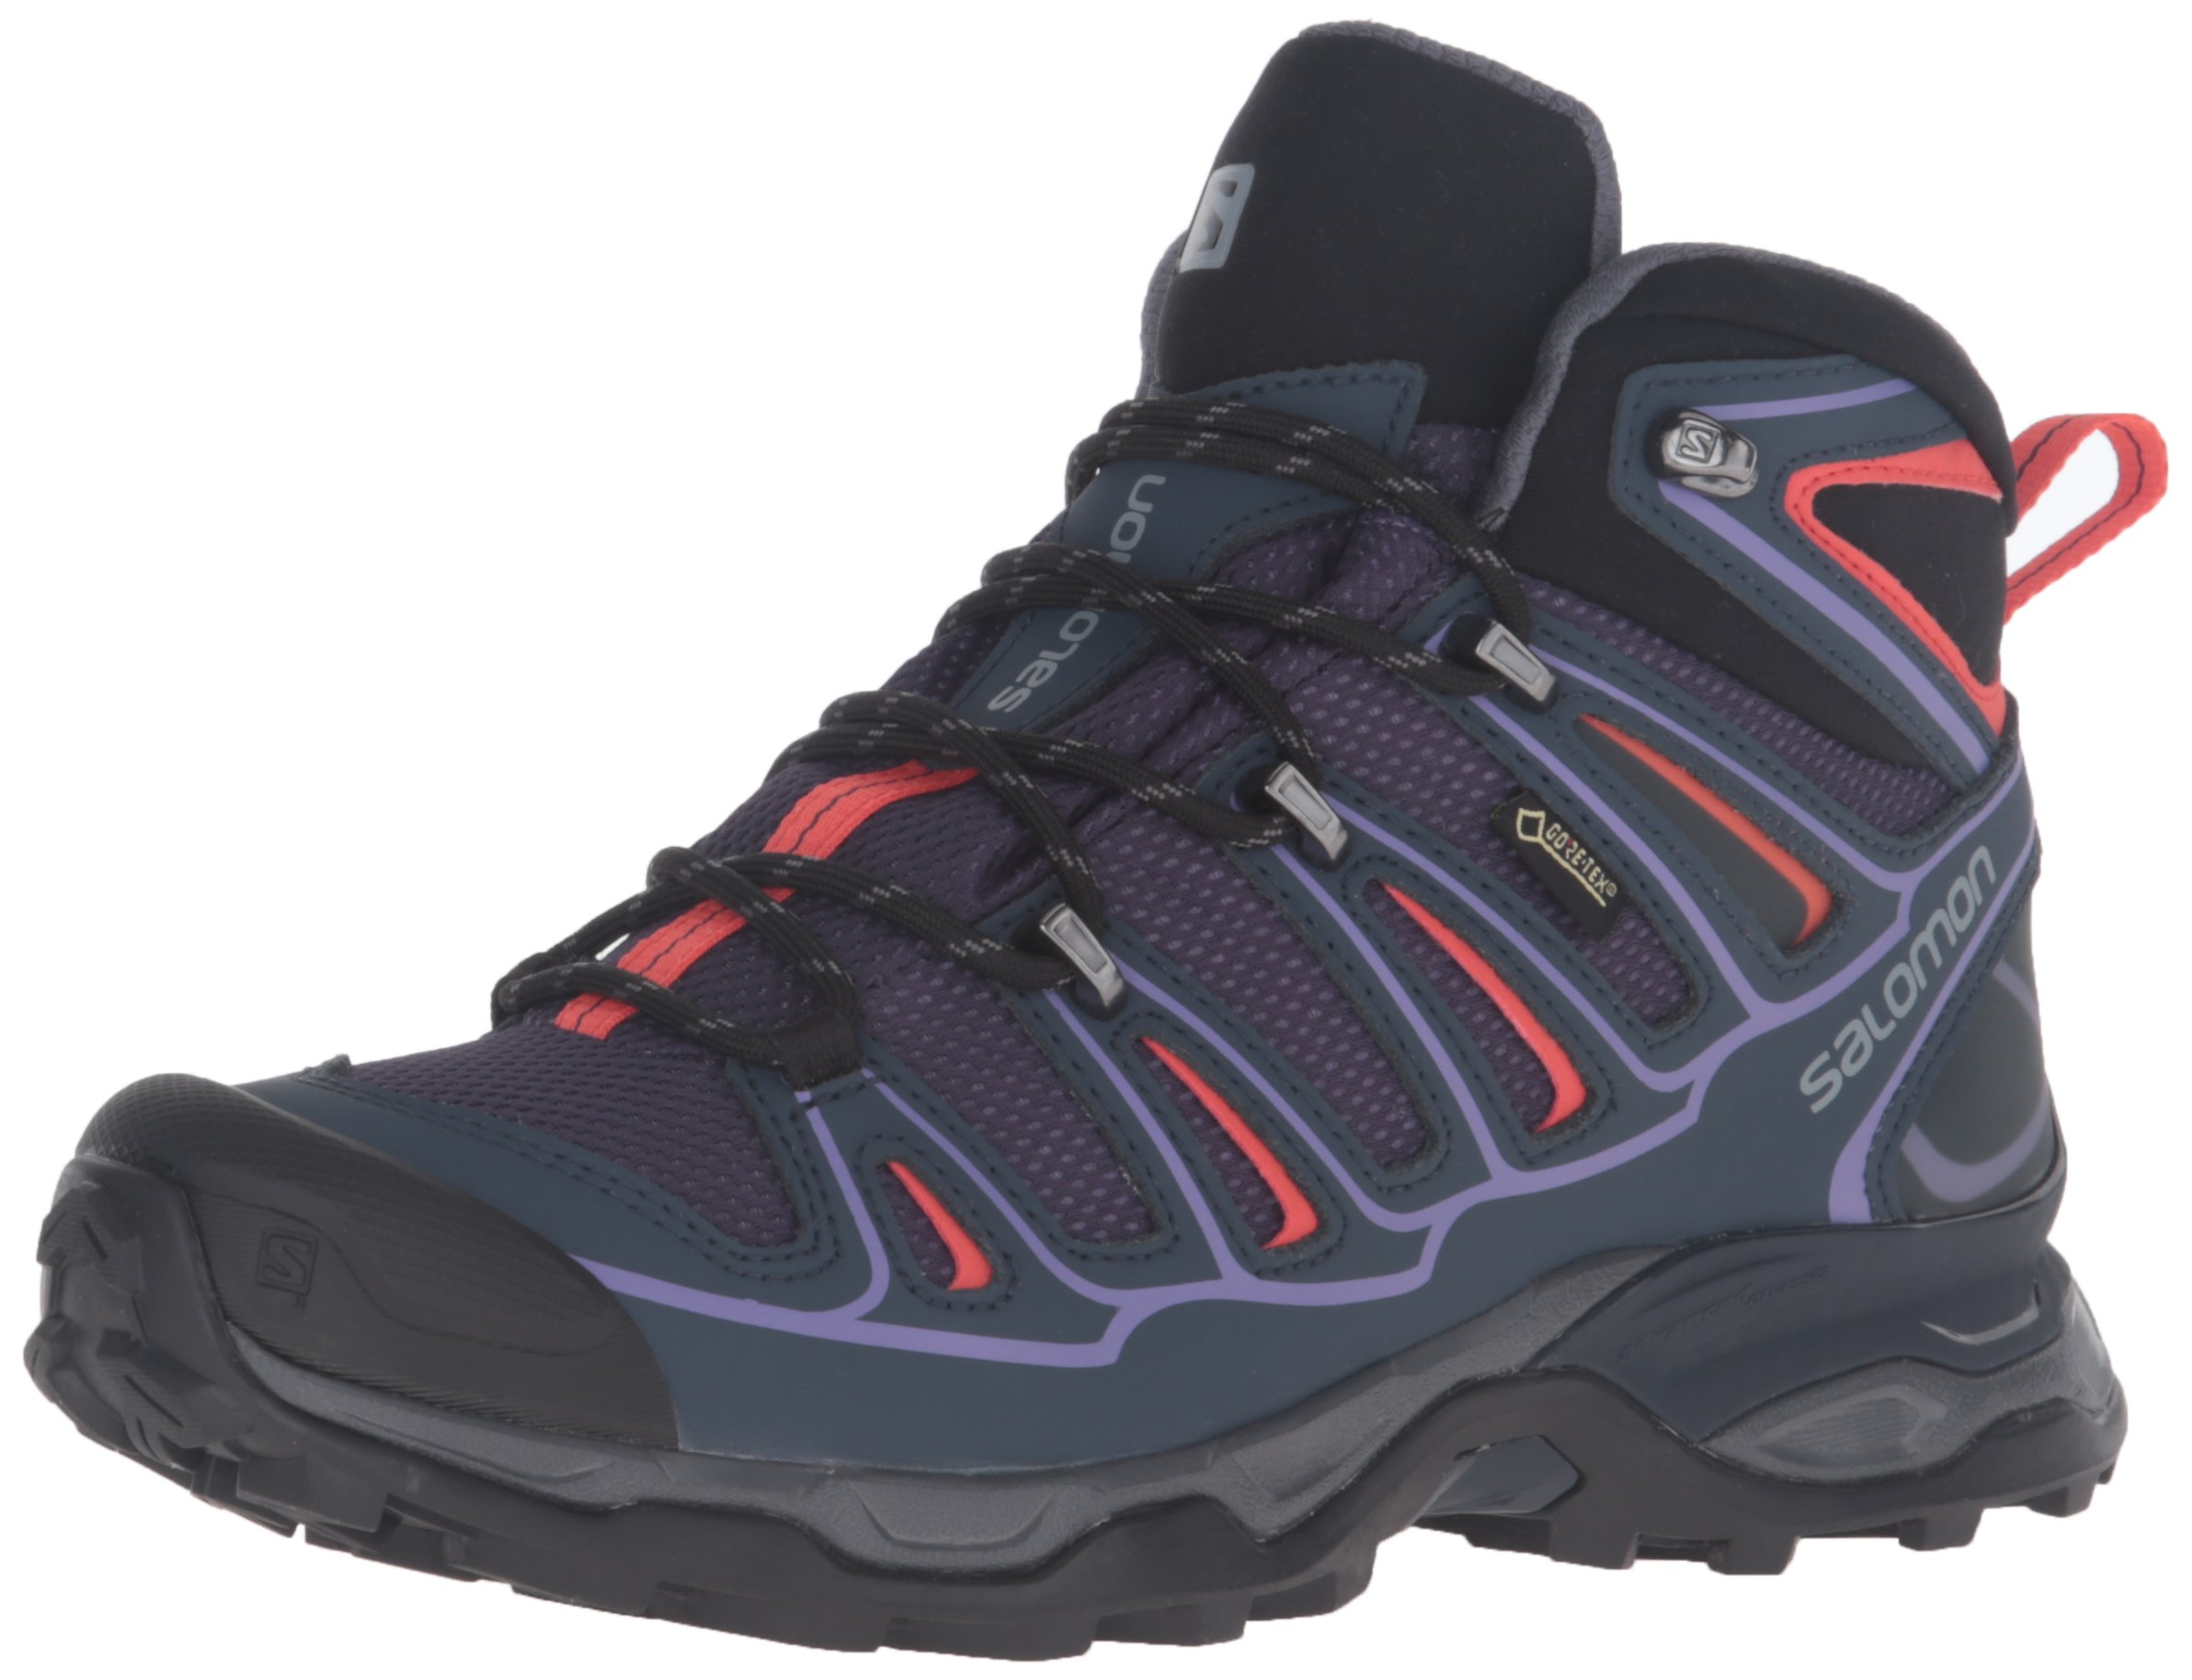 mid wide product hiking shop w gtx boots renegadegtxmid select most lowa comforter renegade colour comfortable